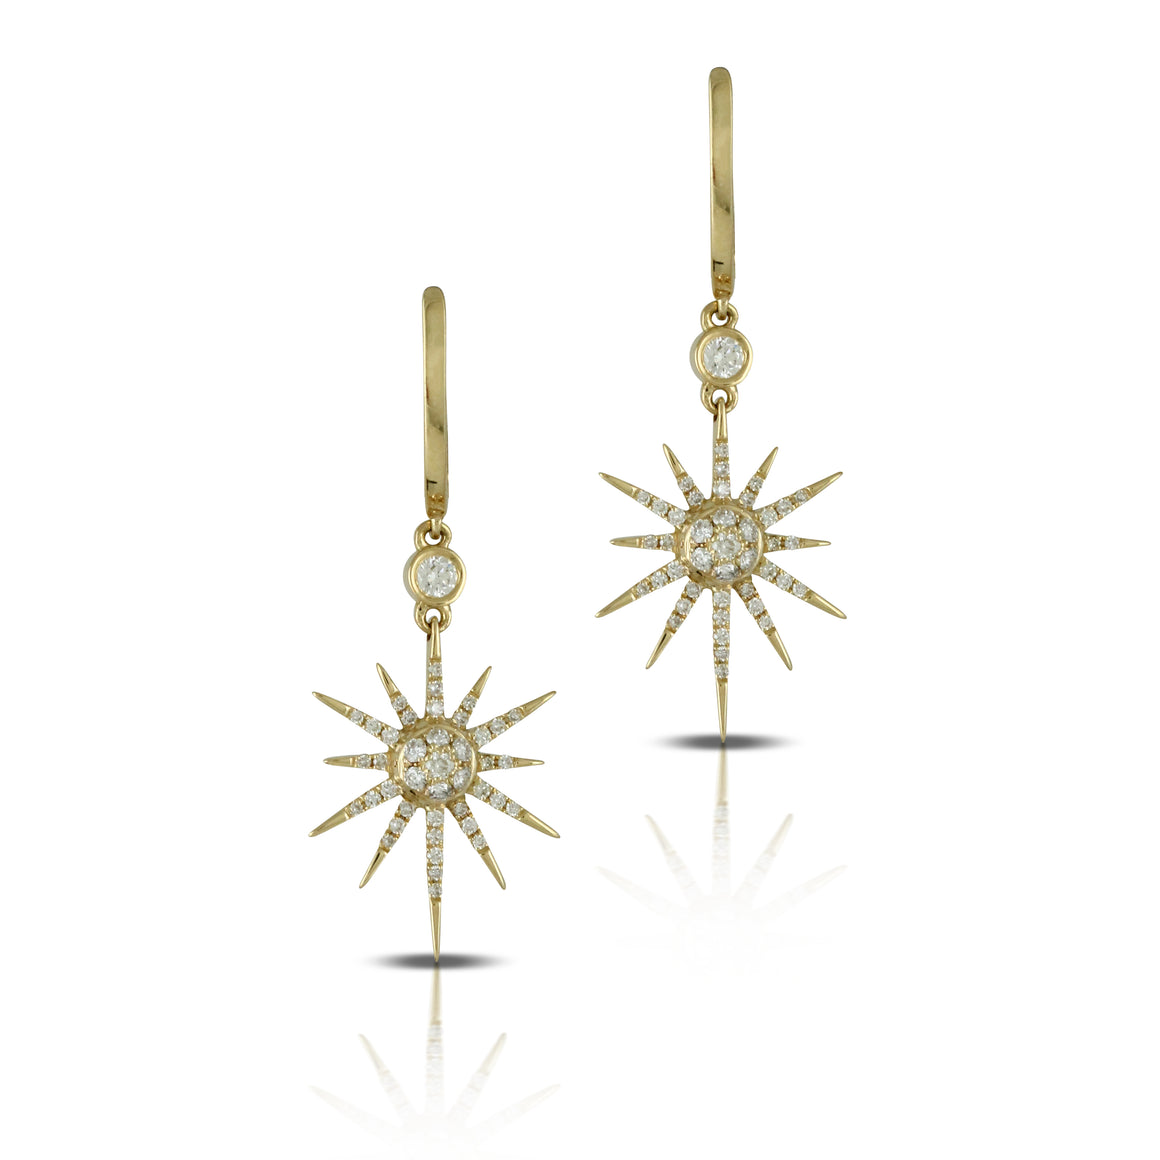 Doves 18k Yellow Gold Diamond Sunburst Earrings